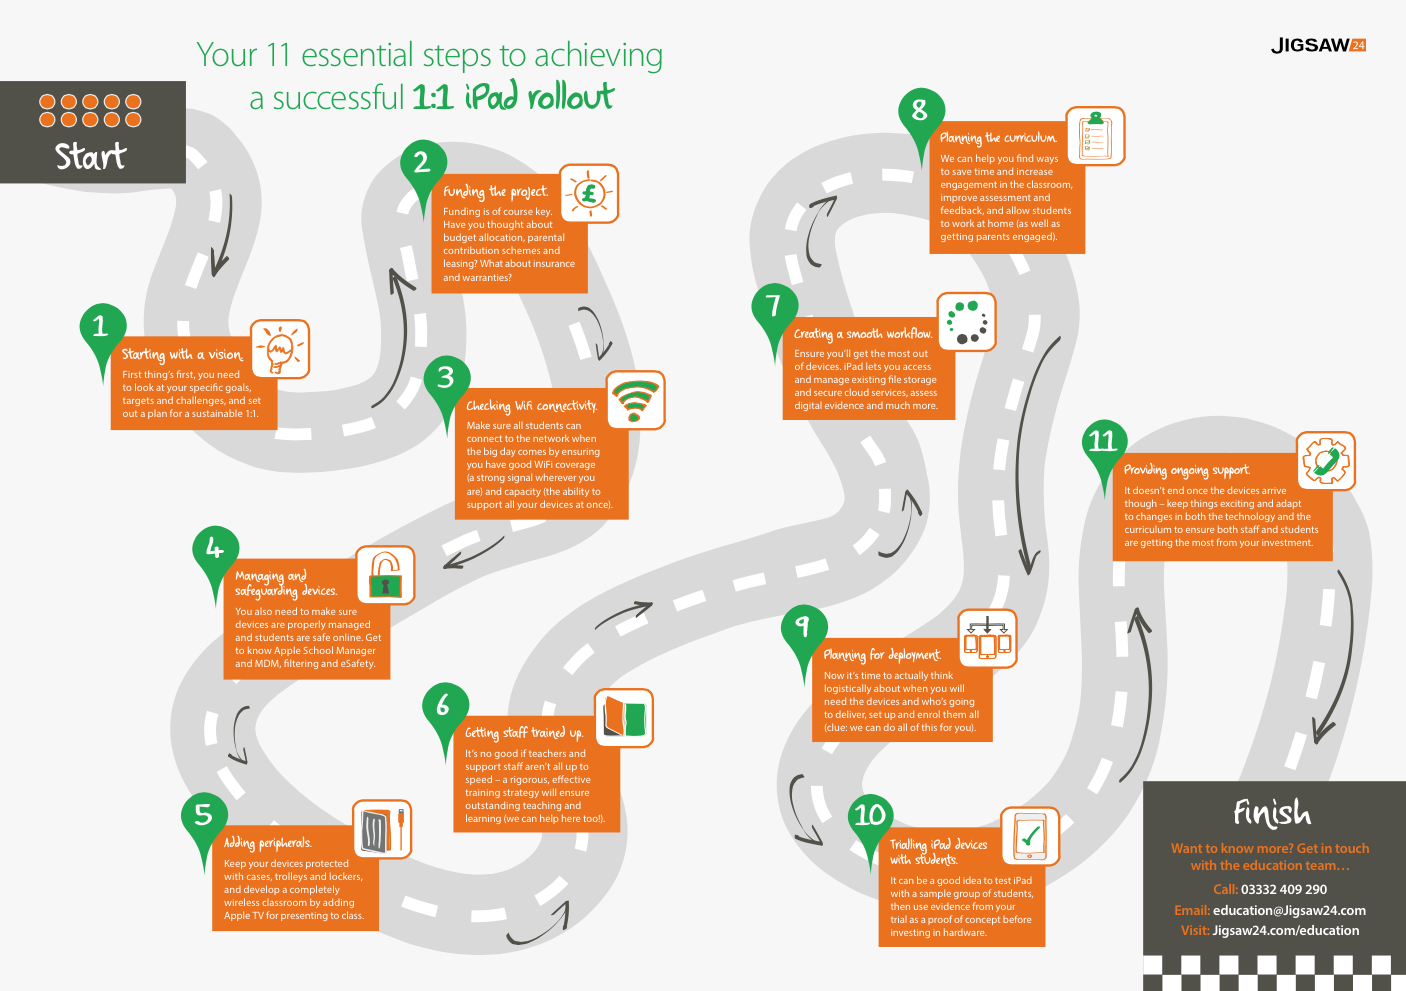 Us Road Map For Ipad Your 1:1 iPad roadmap: 11 essential steps to a successful rollout